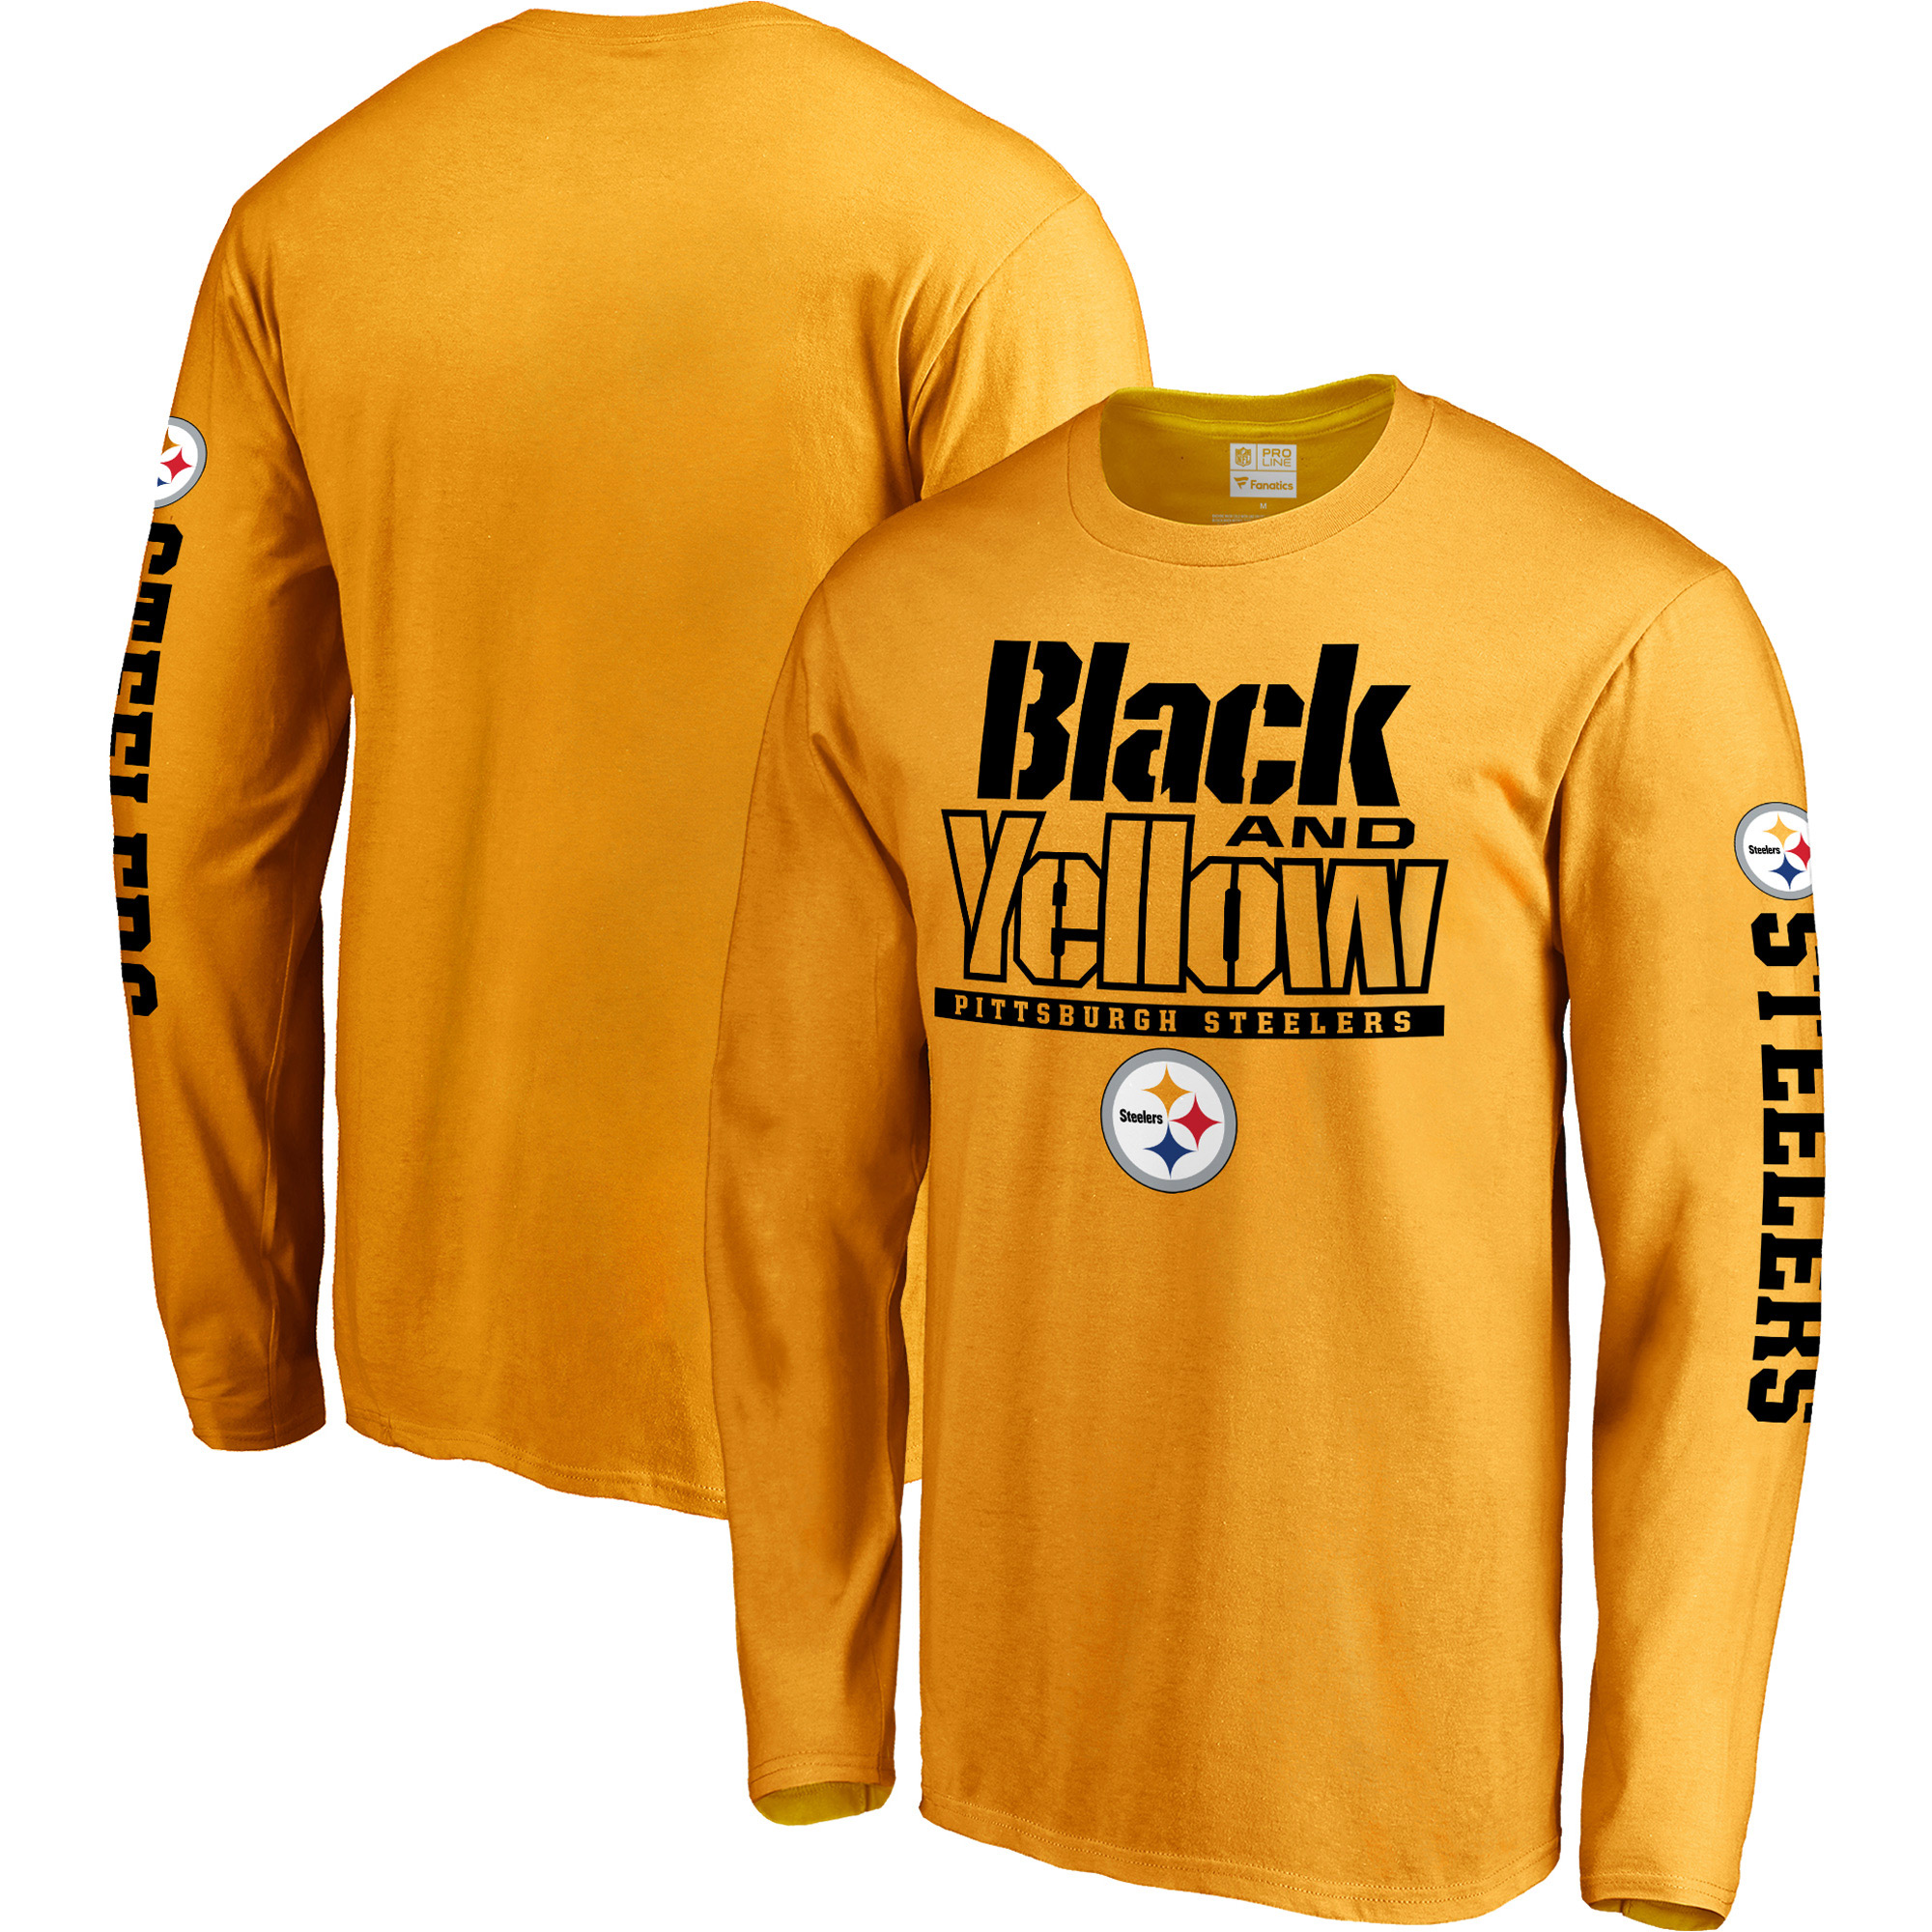 Pittsburgh Steelers NFL Pro Line Hometown Collection Long Sleeve T-Shirt - Gold